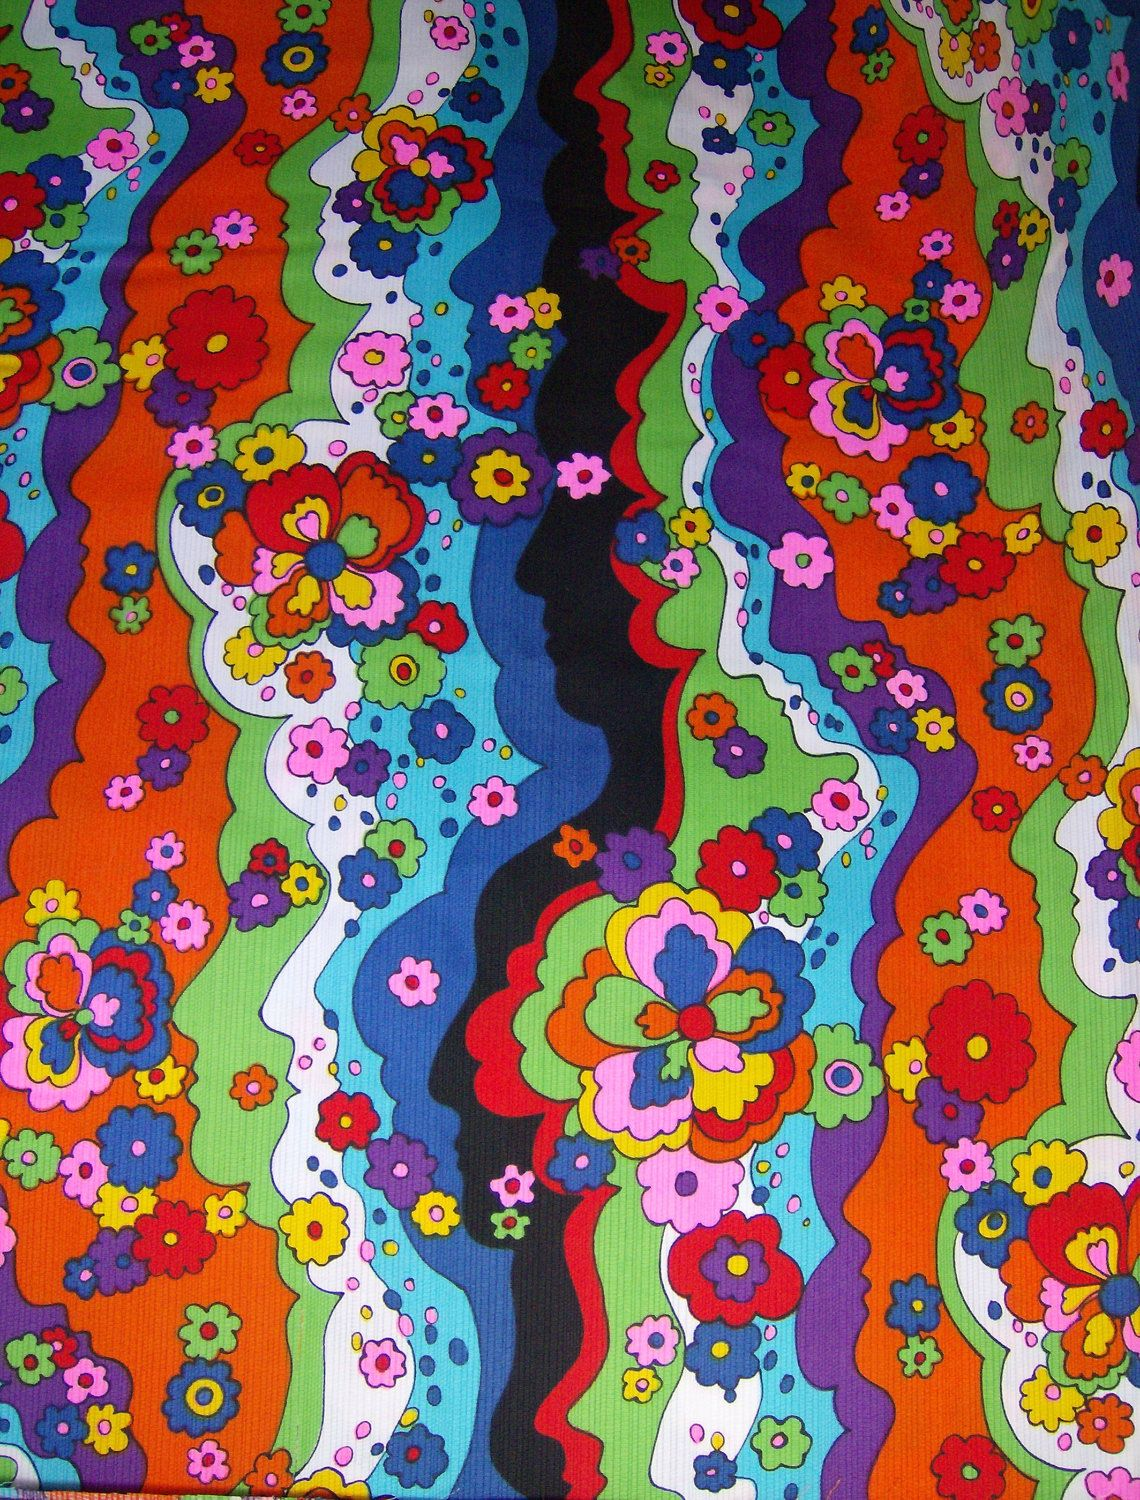 RESERVED 1970s Peter Max Era Style Psychedelic Fabric ... Peter Max 60s